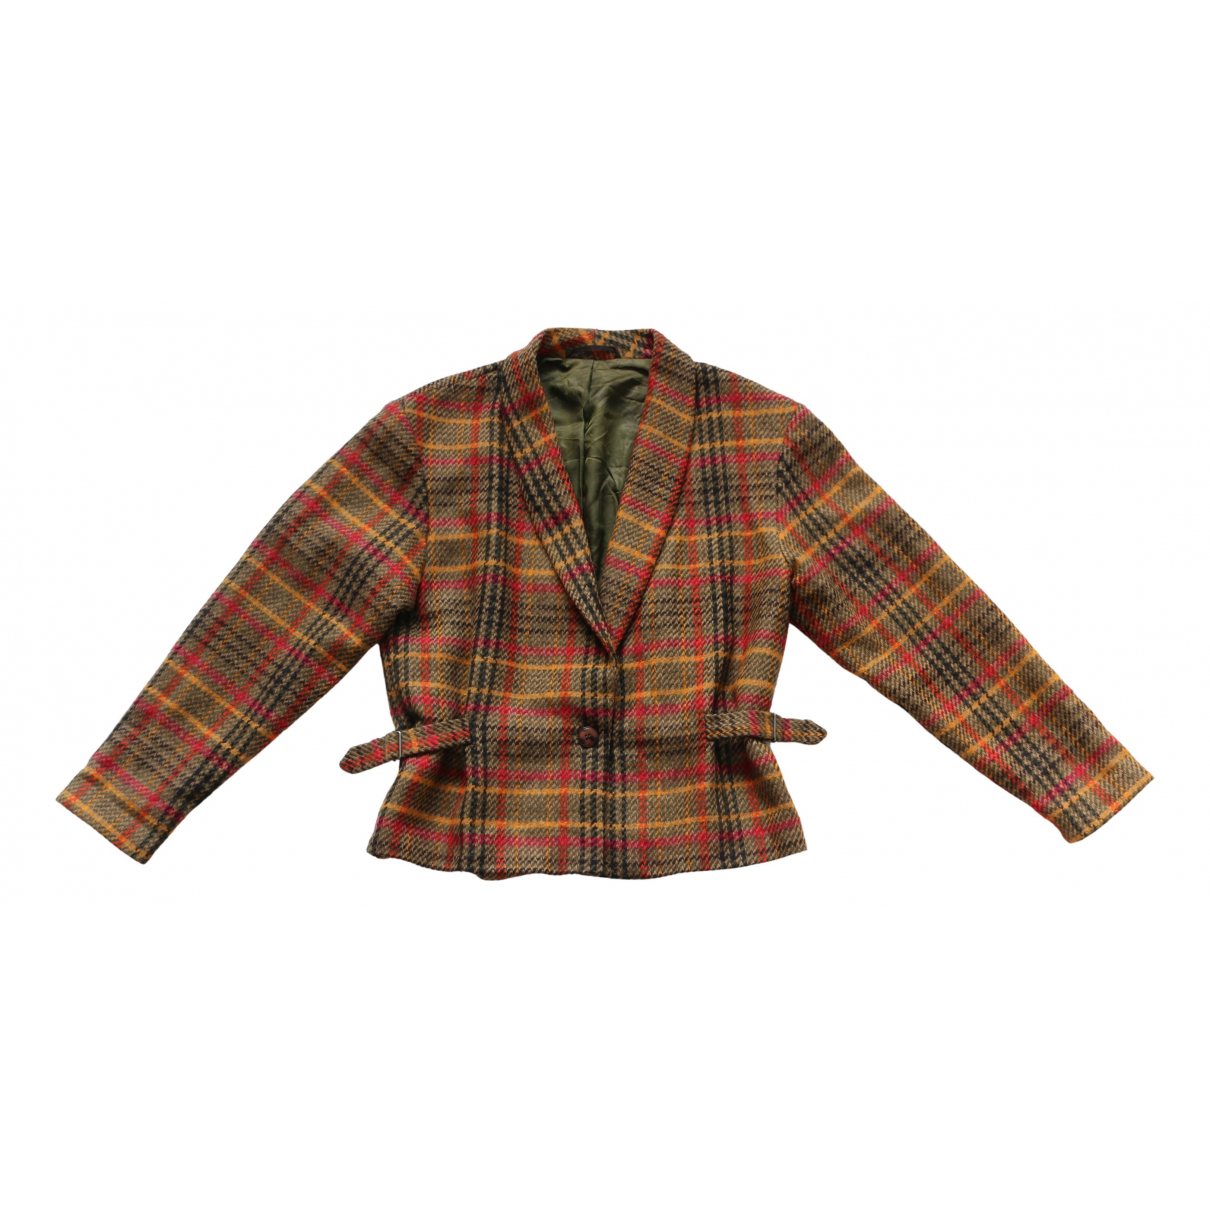 Non Signé / Unsigned N Multicolour Wool jacket for Women One Size International